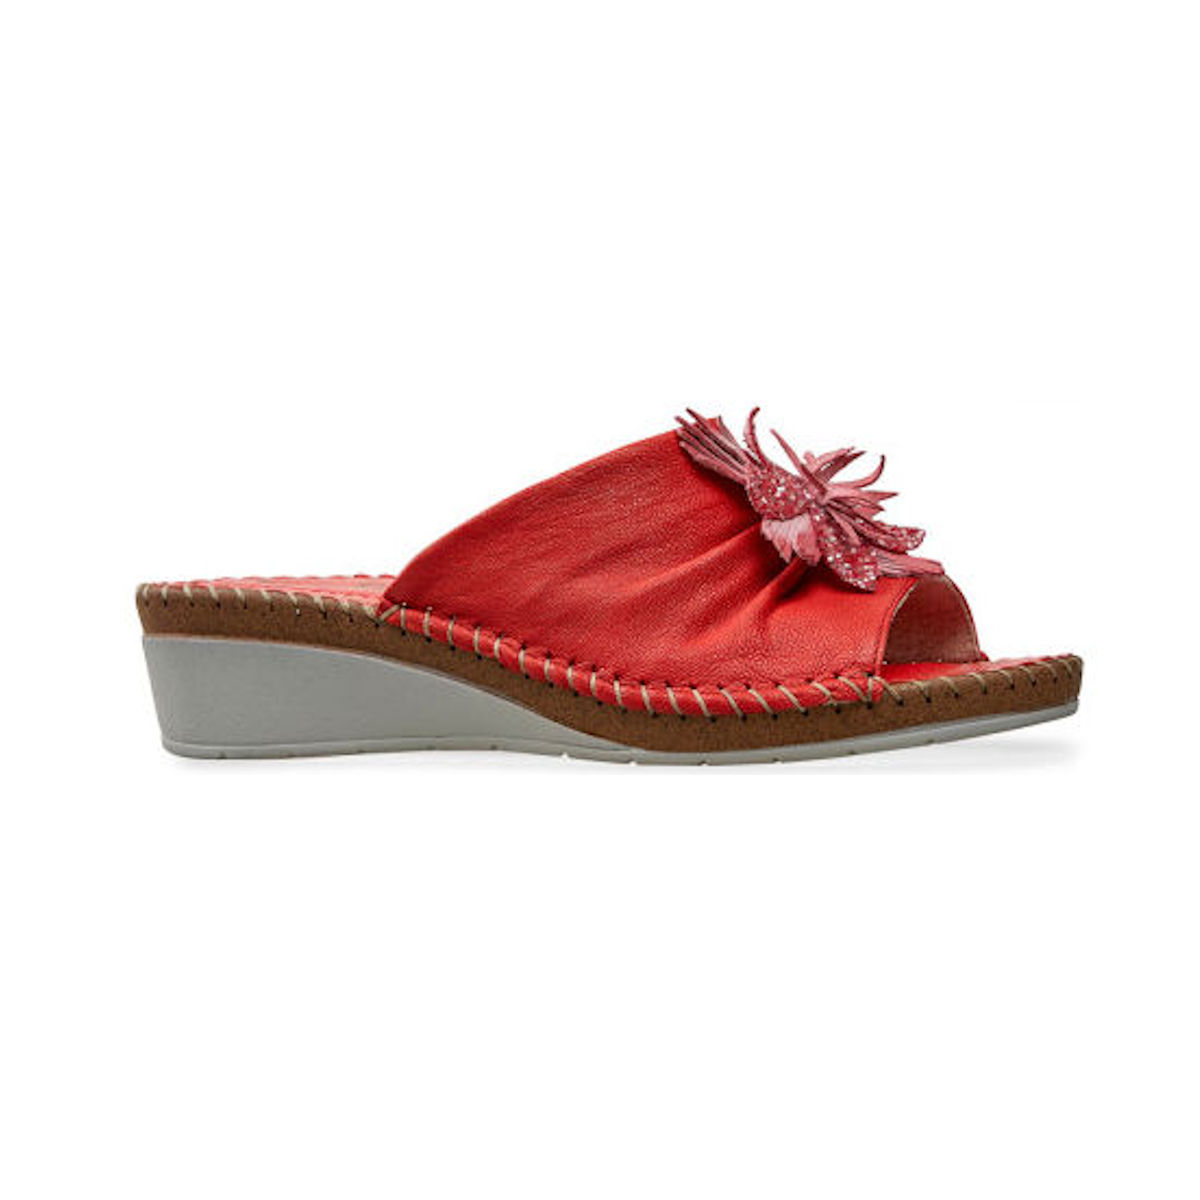 Van Dal Banks Red Leather Womens Sandal